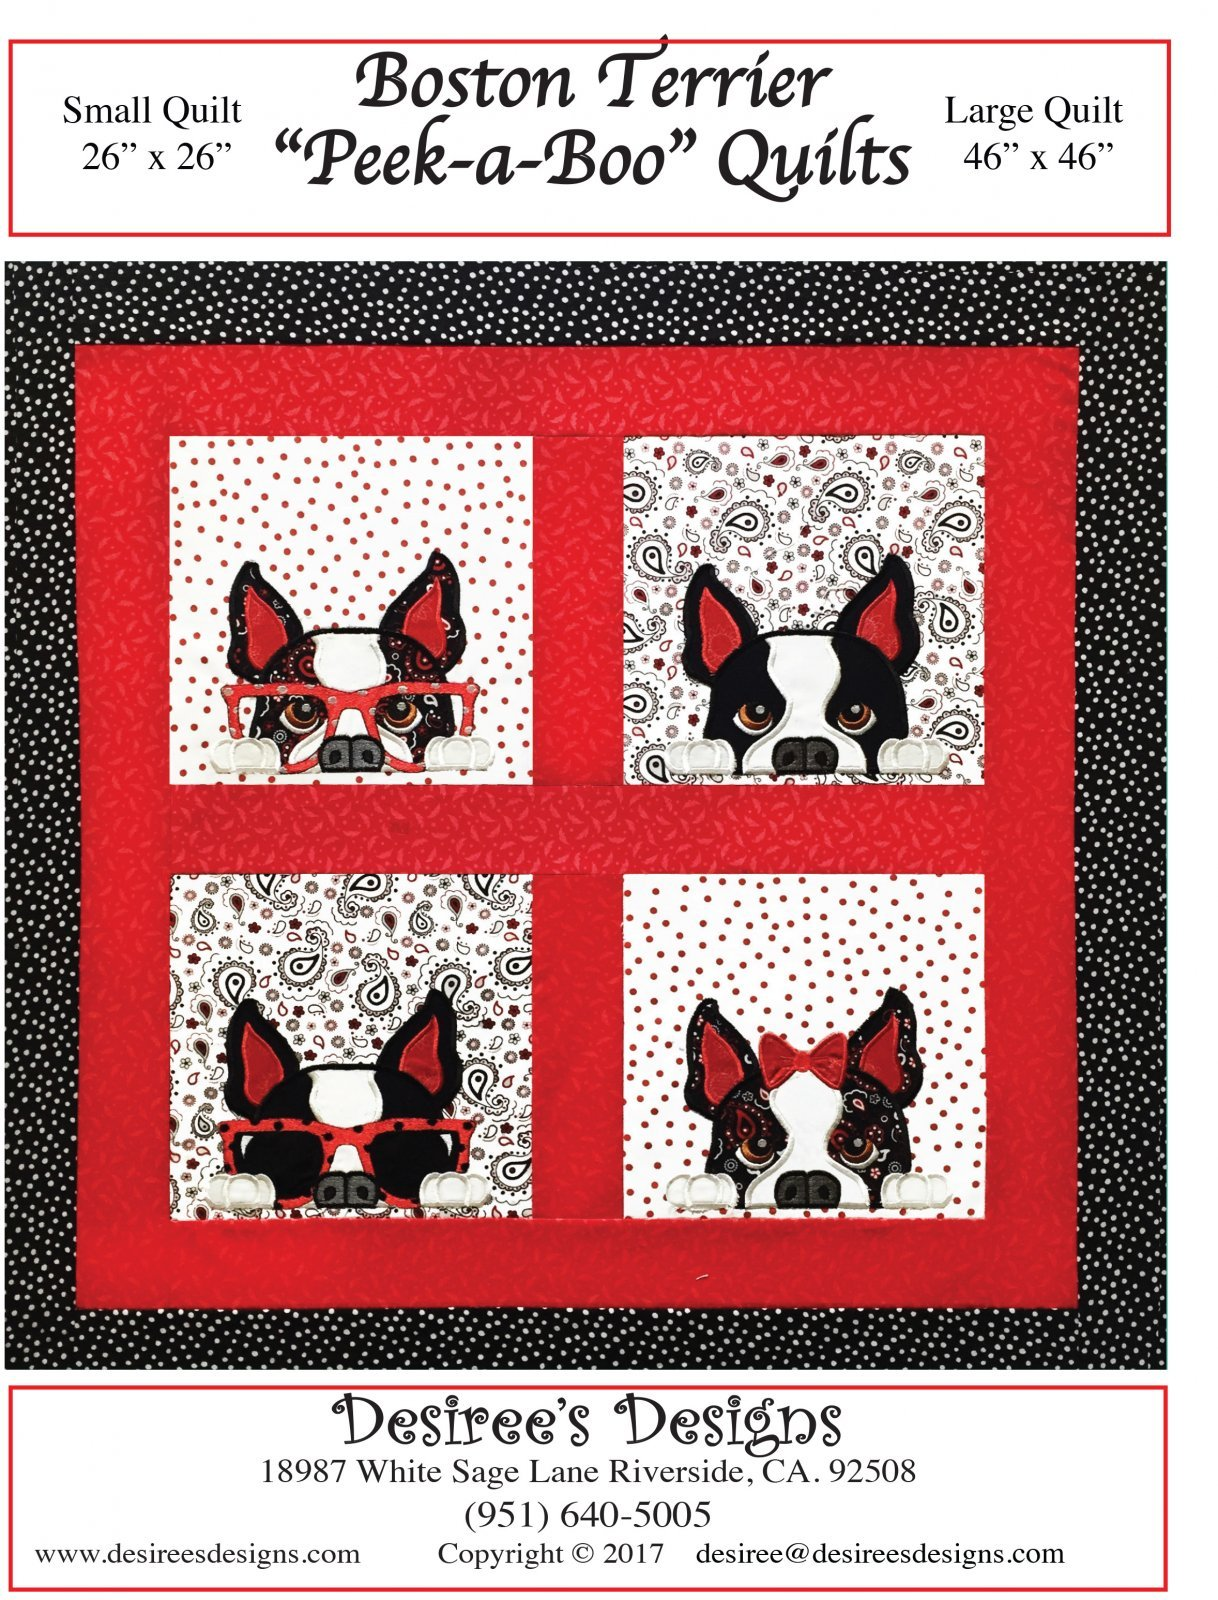 Boston Terrier Peek-a-Boo Quilts Pattern